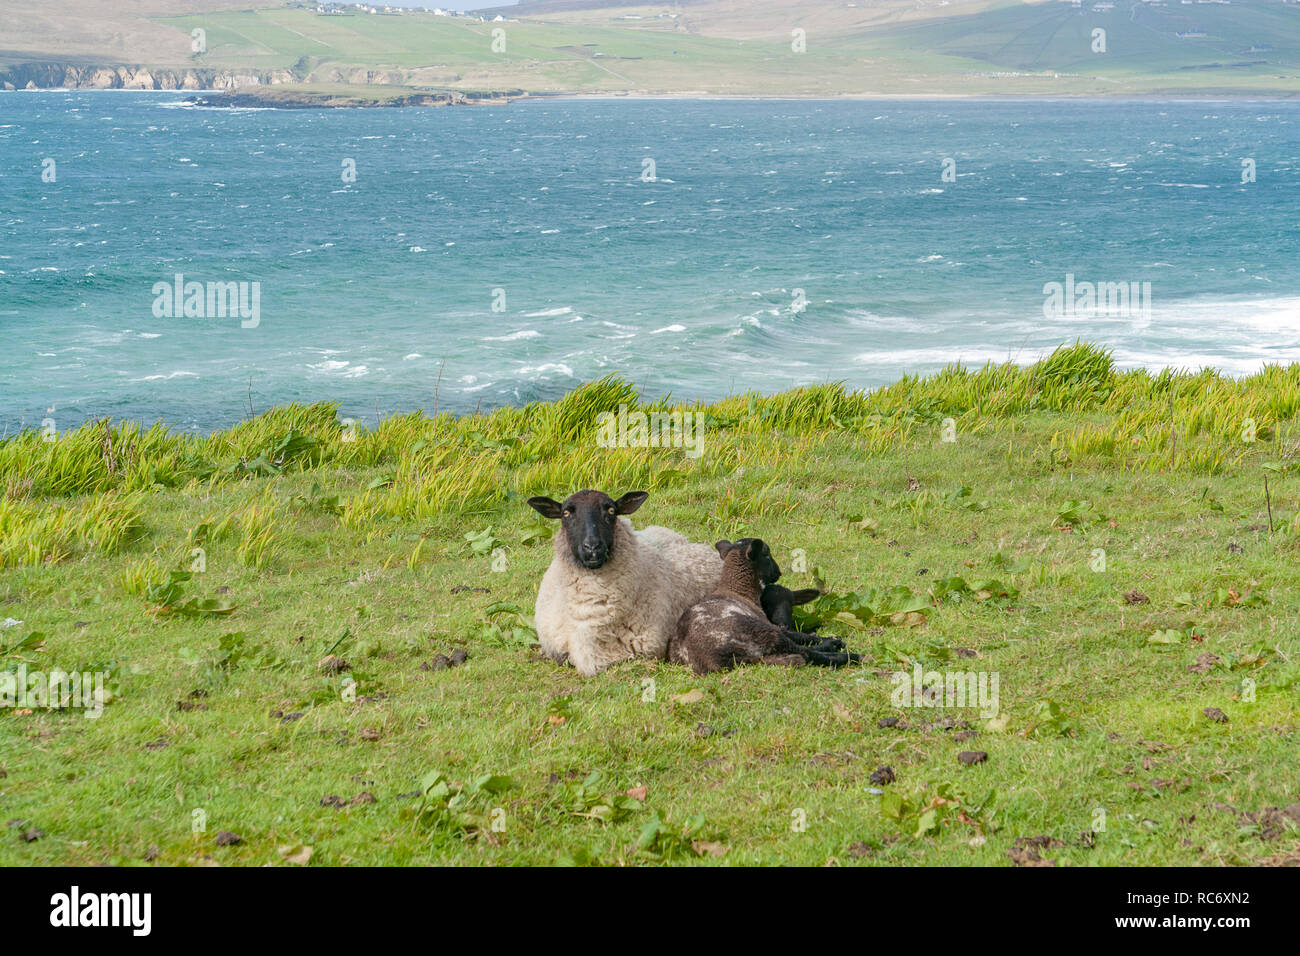 coastal scenery including a sheep on a meadow in Ireland - Stock Image